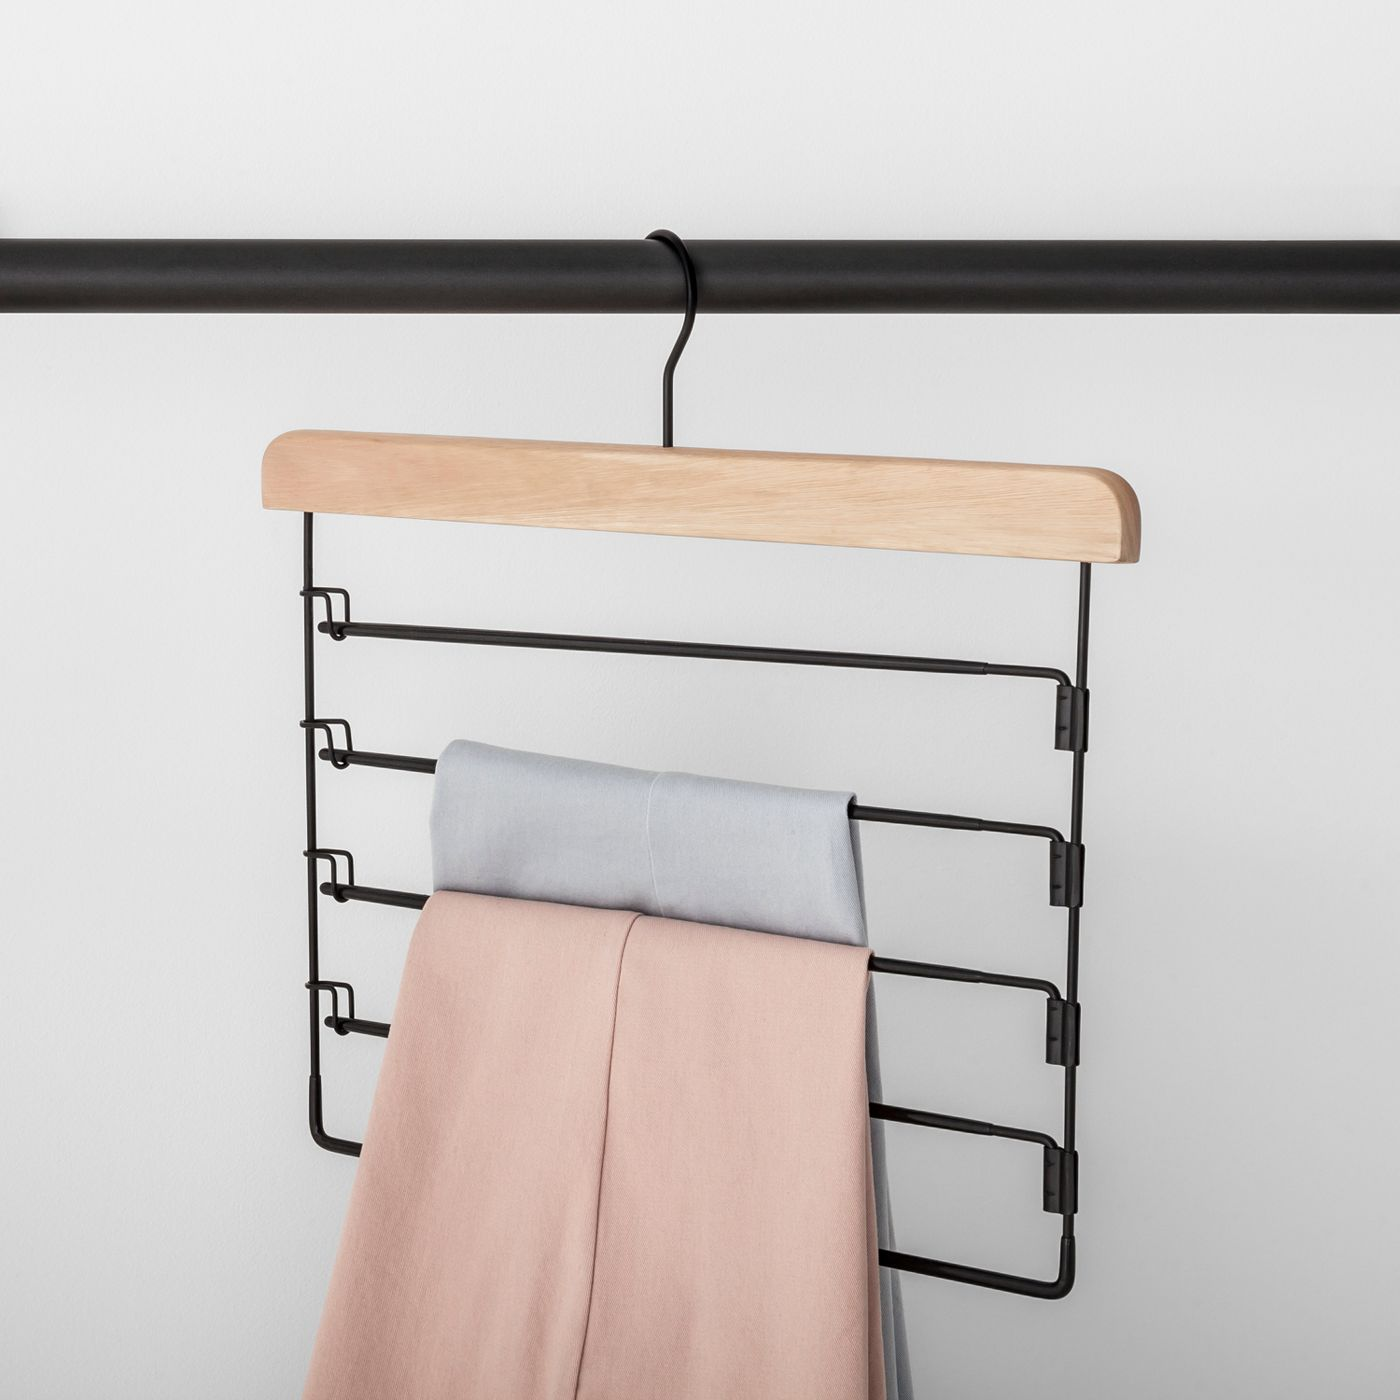 5 Tiered Pants Hanger - Made By Design™ - image 2 of 3